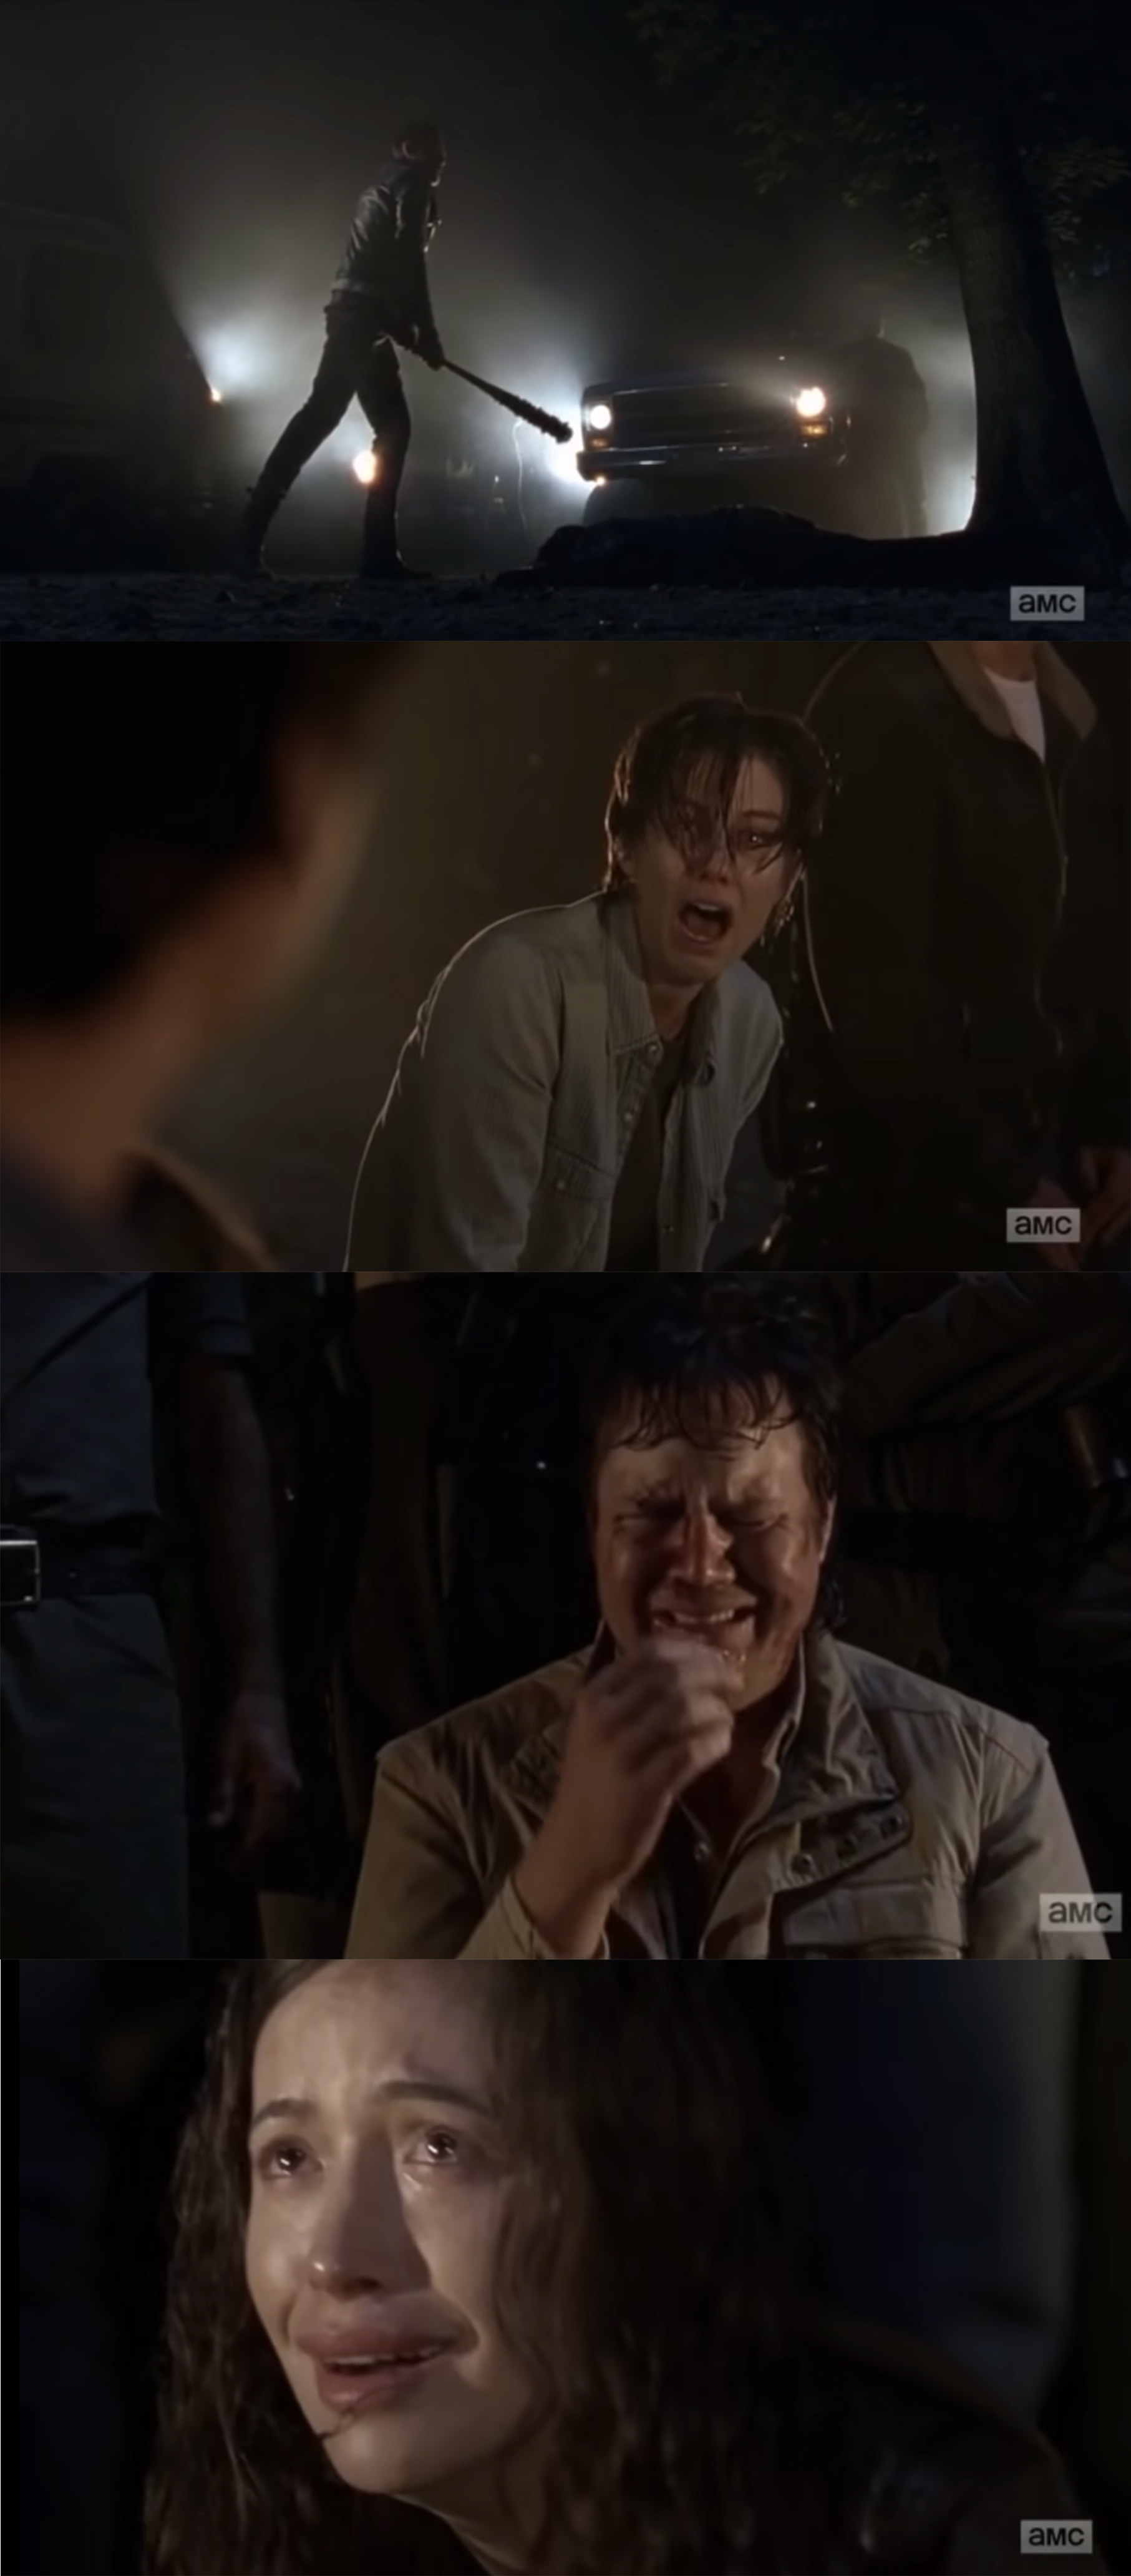 Negan beating Glenn with a bat while his friends and family watch in horror